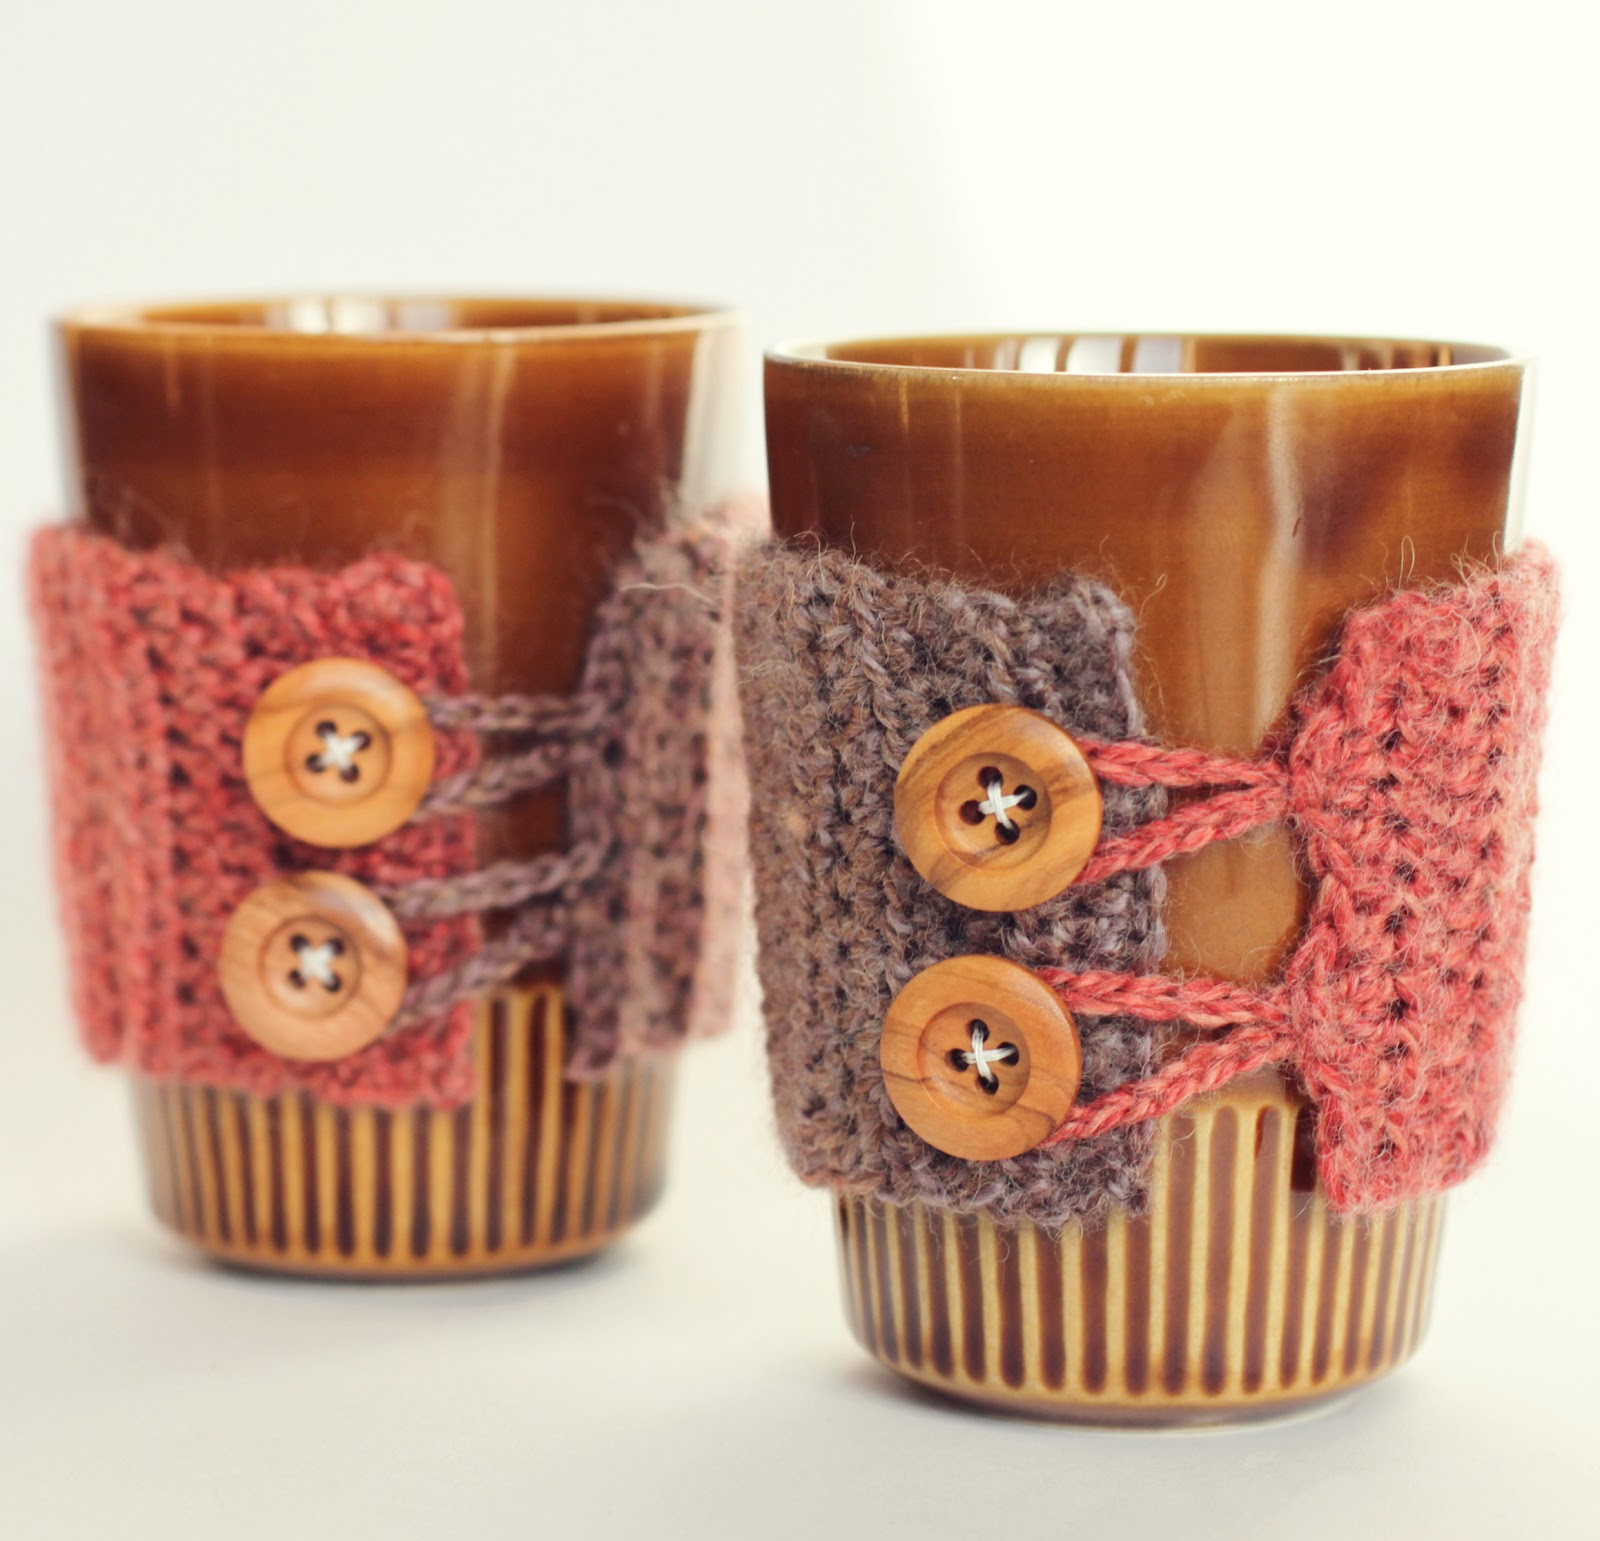 Crochet Coffee Cup Cozy Lovely L♥valizious Mug Cozy Tutorial Of Unique 44 Pics Crochet Coffee Cup Cozy